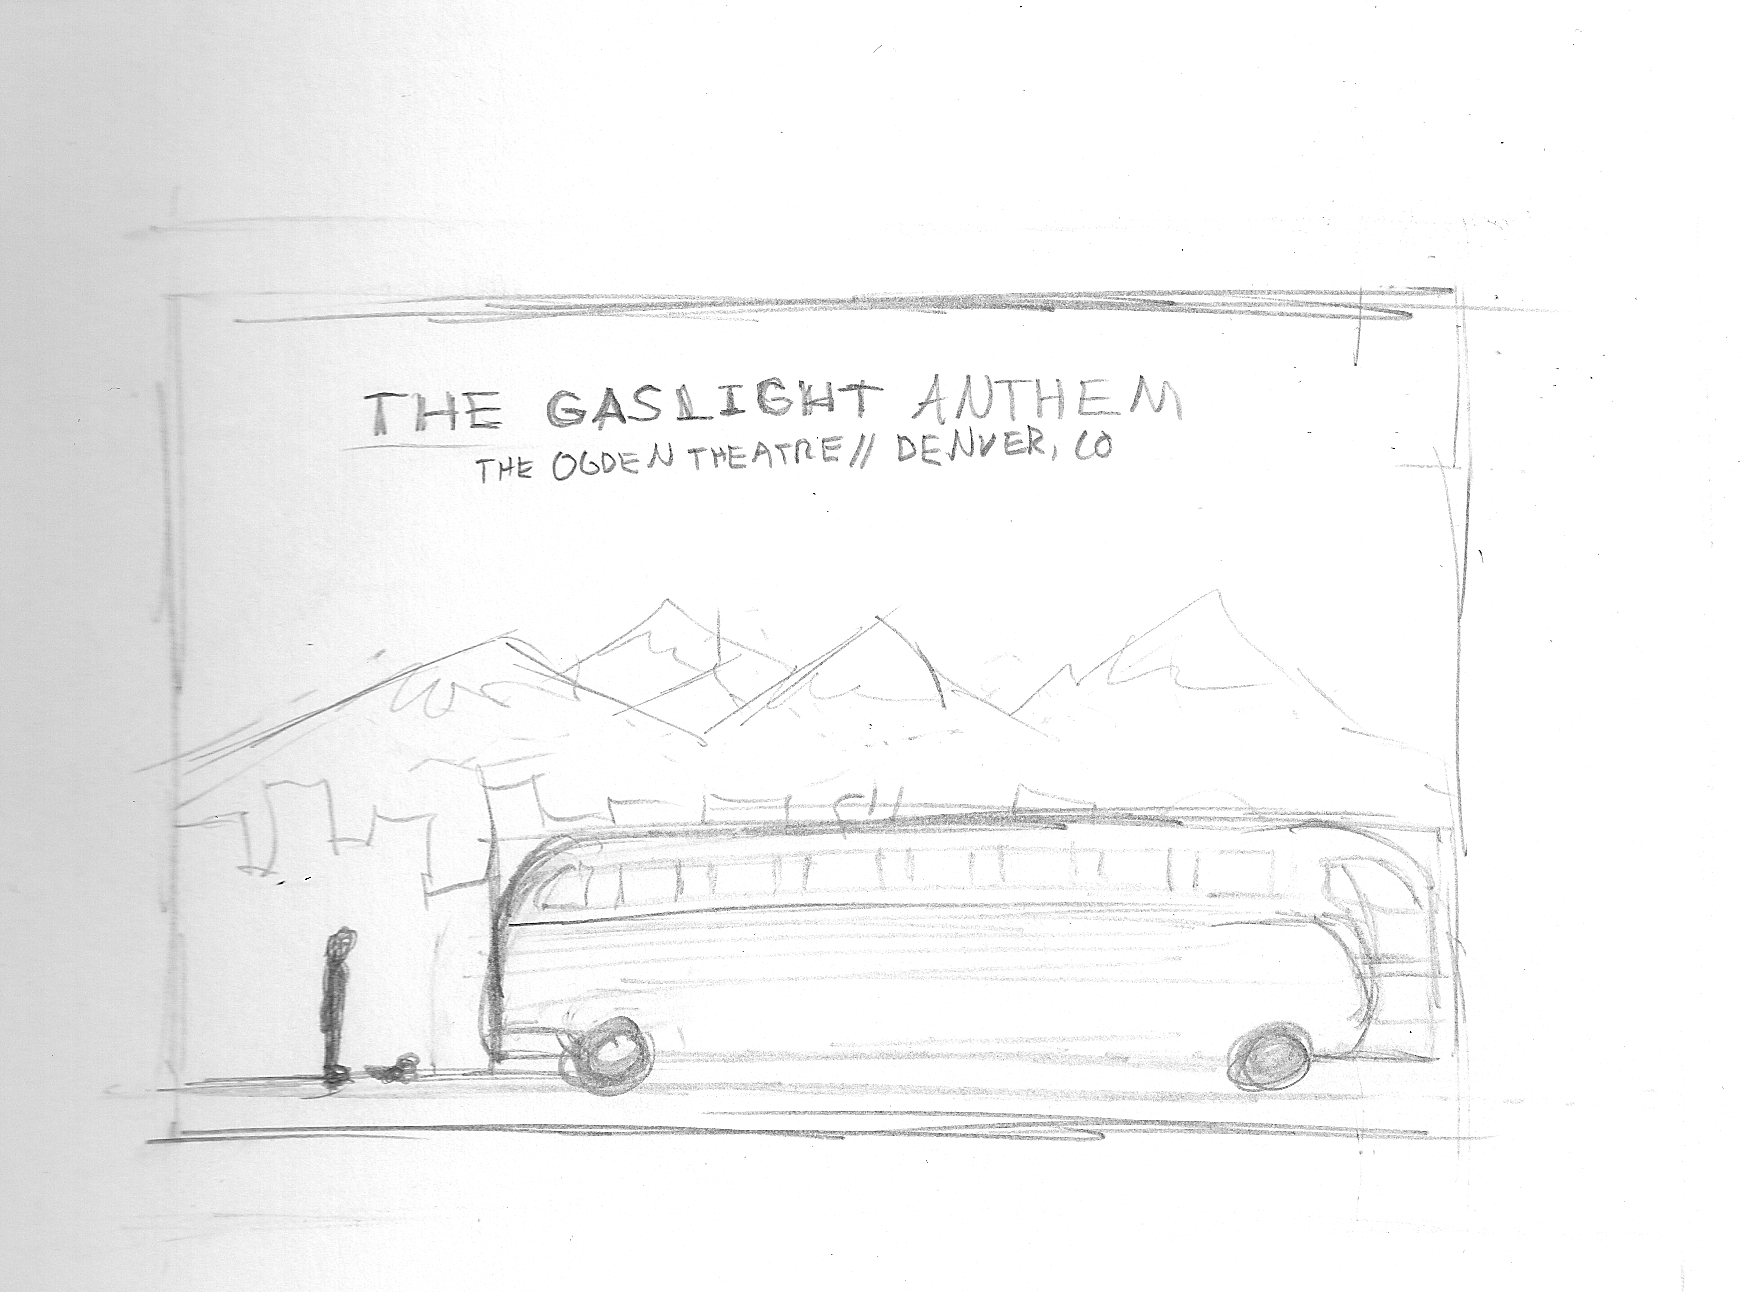 The Gaslight Anthem at The Ogden Theatre - image 2 - student project